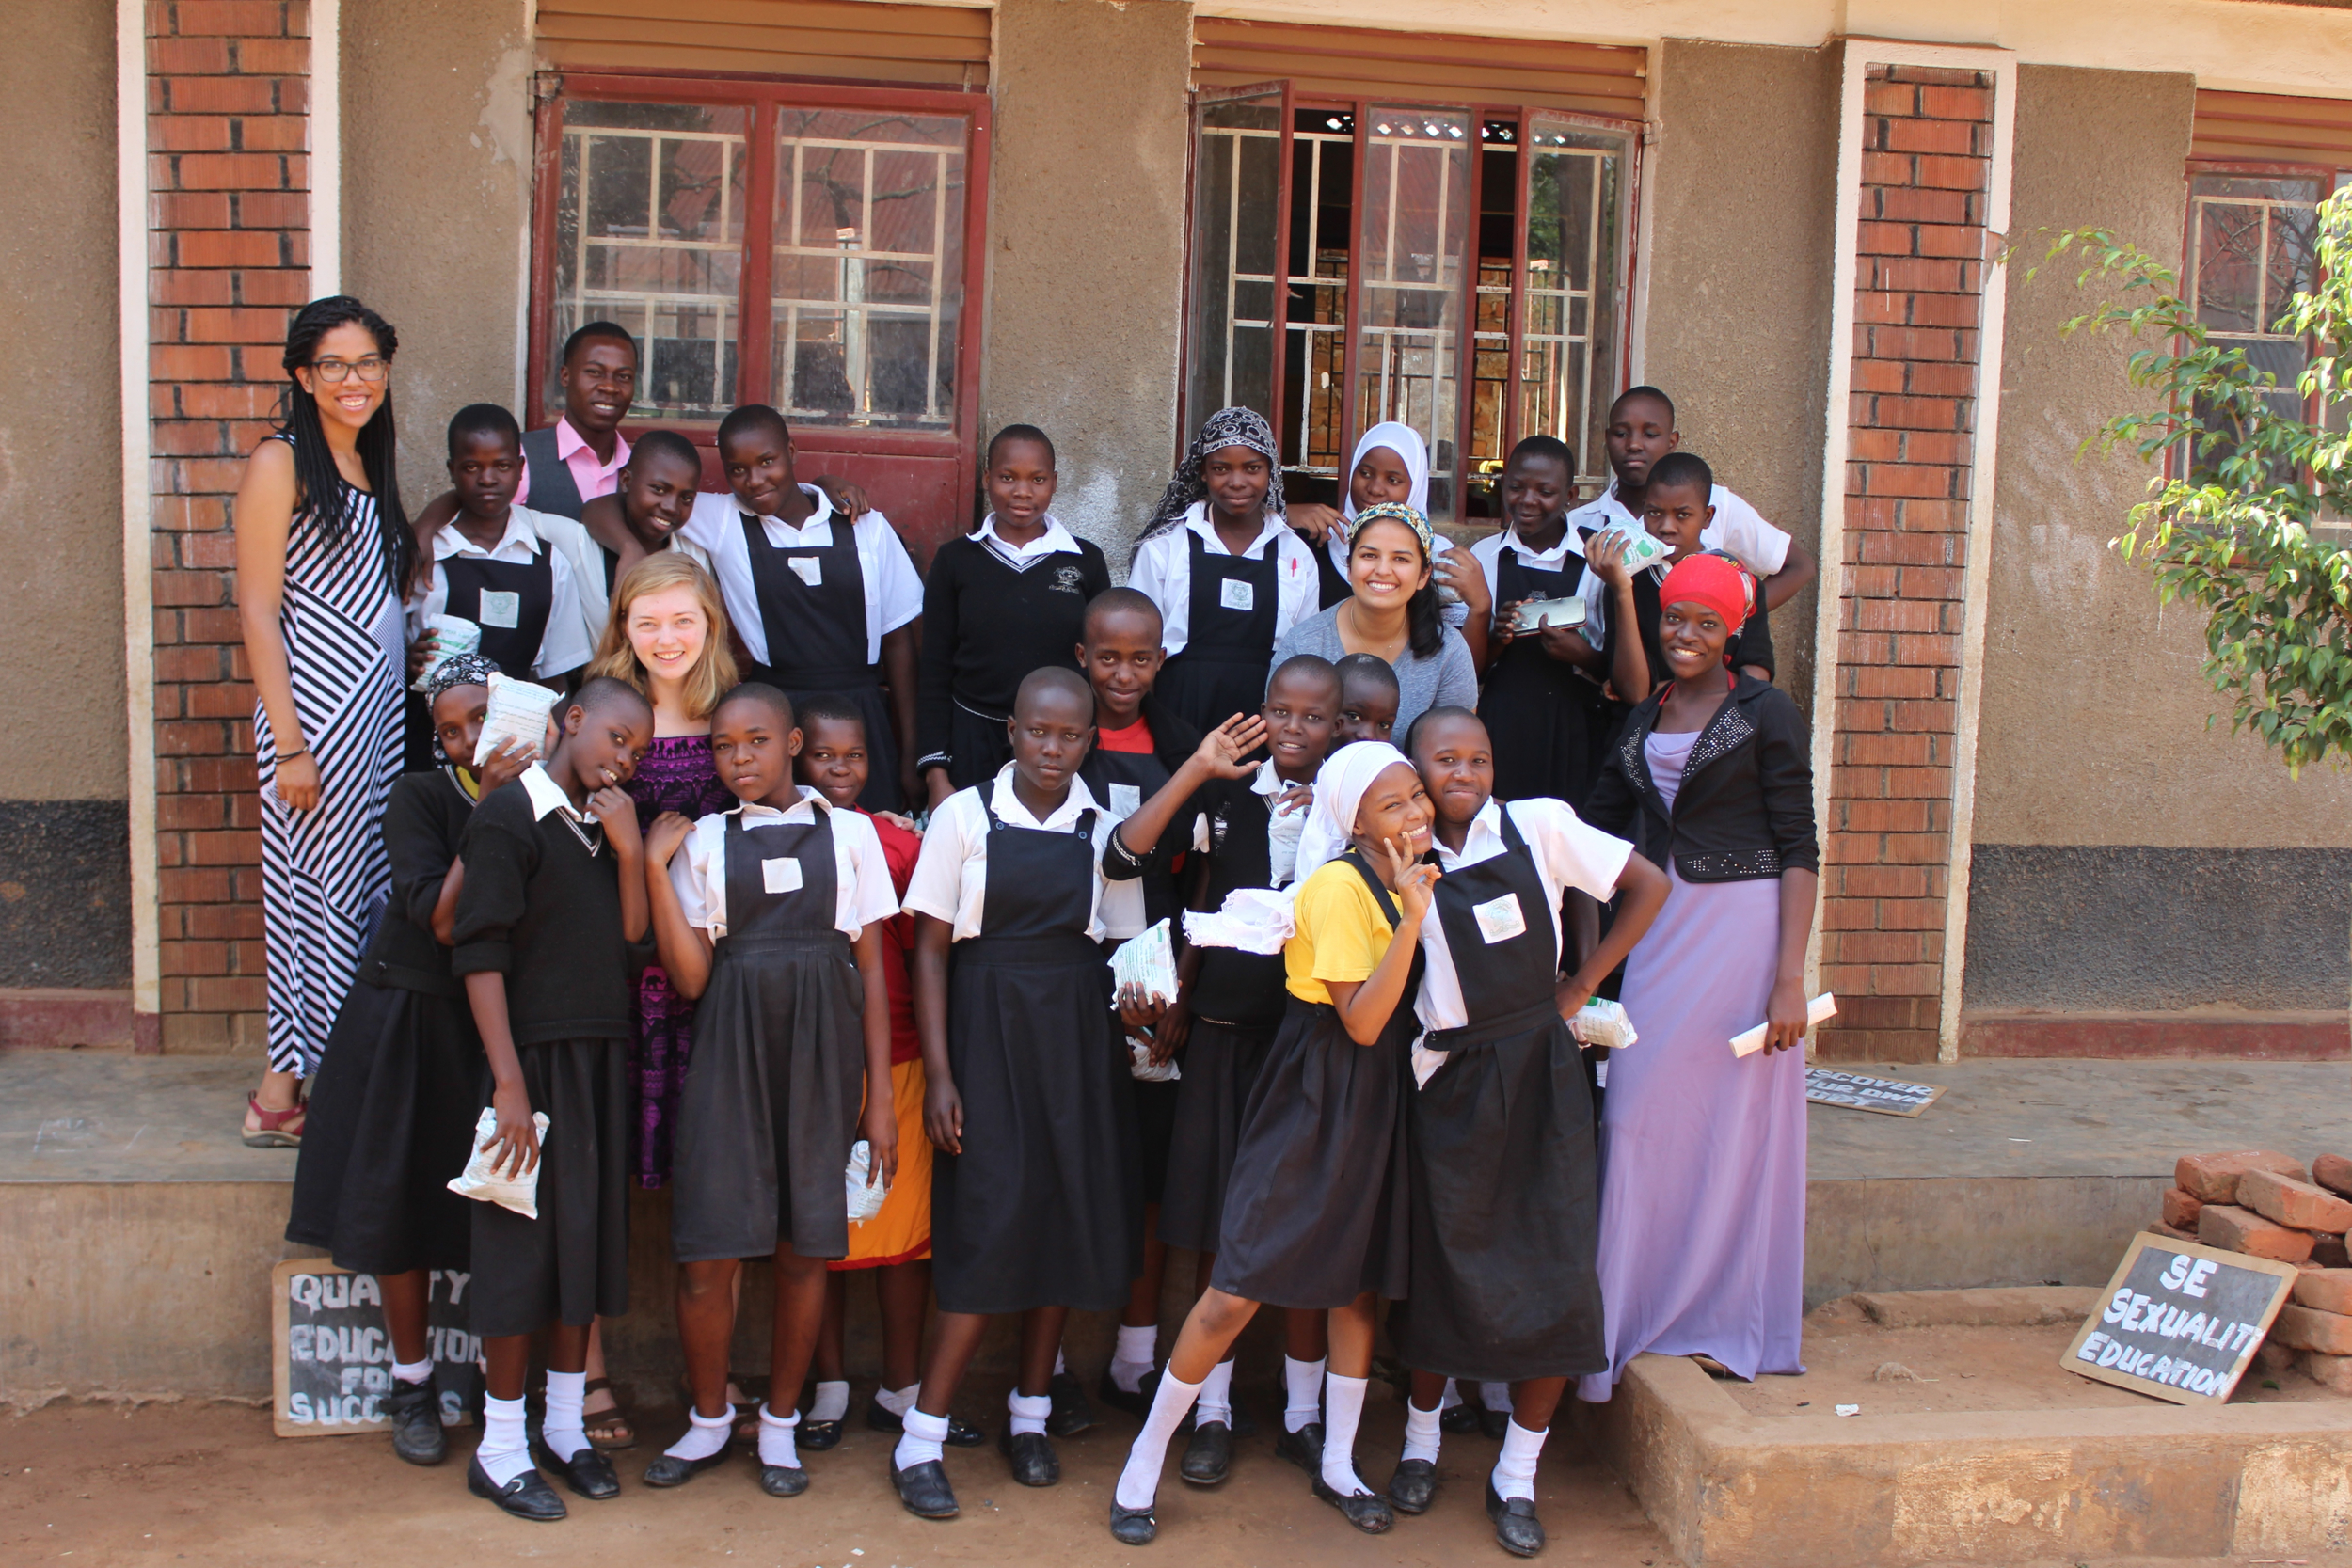 Iganga Central students posing with their new 1.5 year supply of reusable, eco-friendly pads as a part of the Menstrual Dignity Project